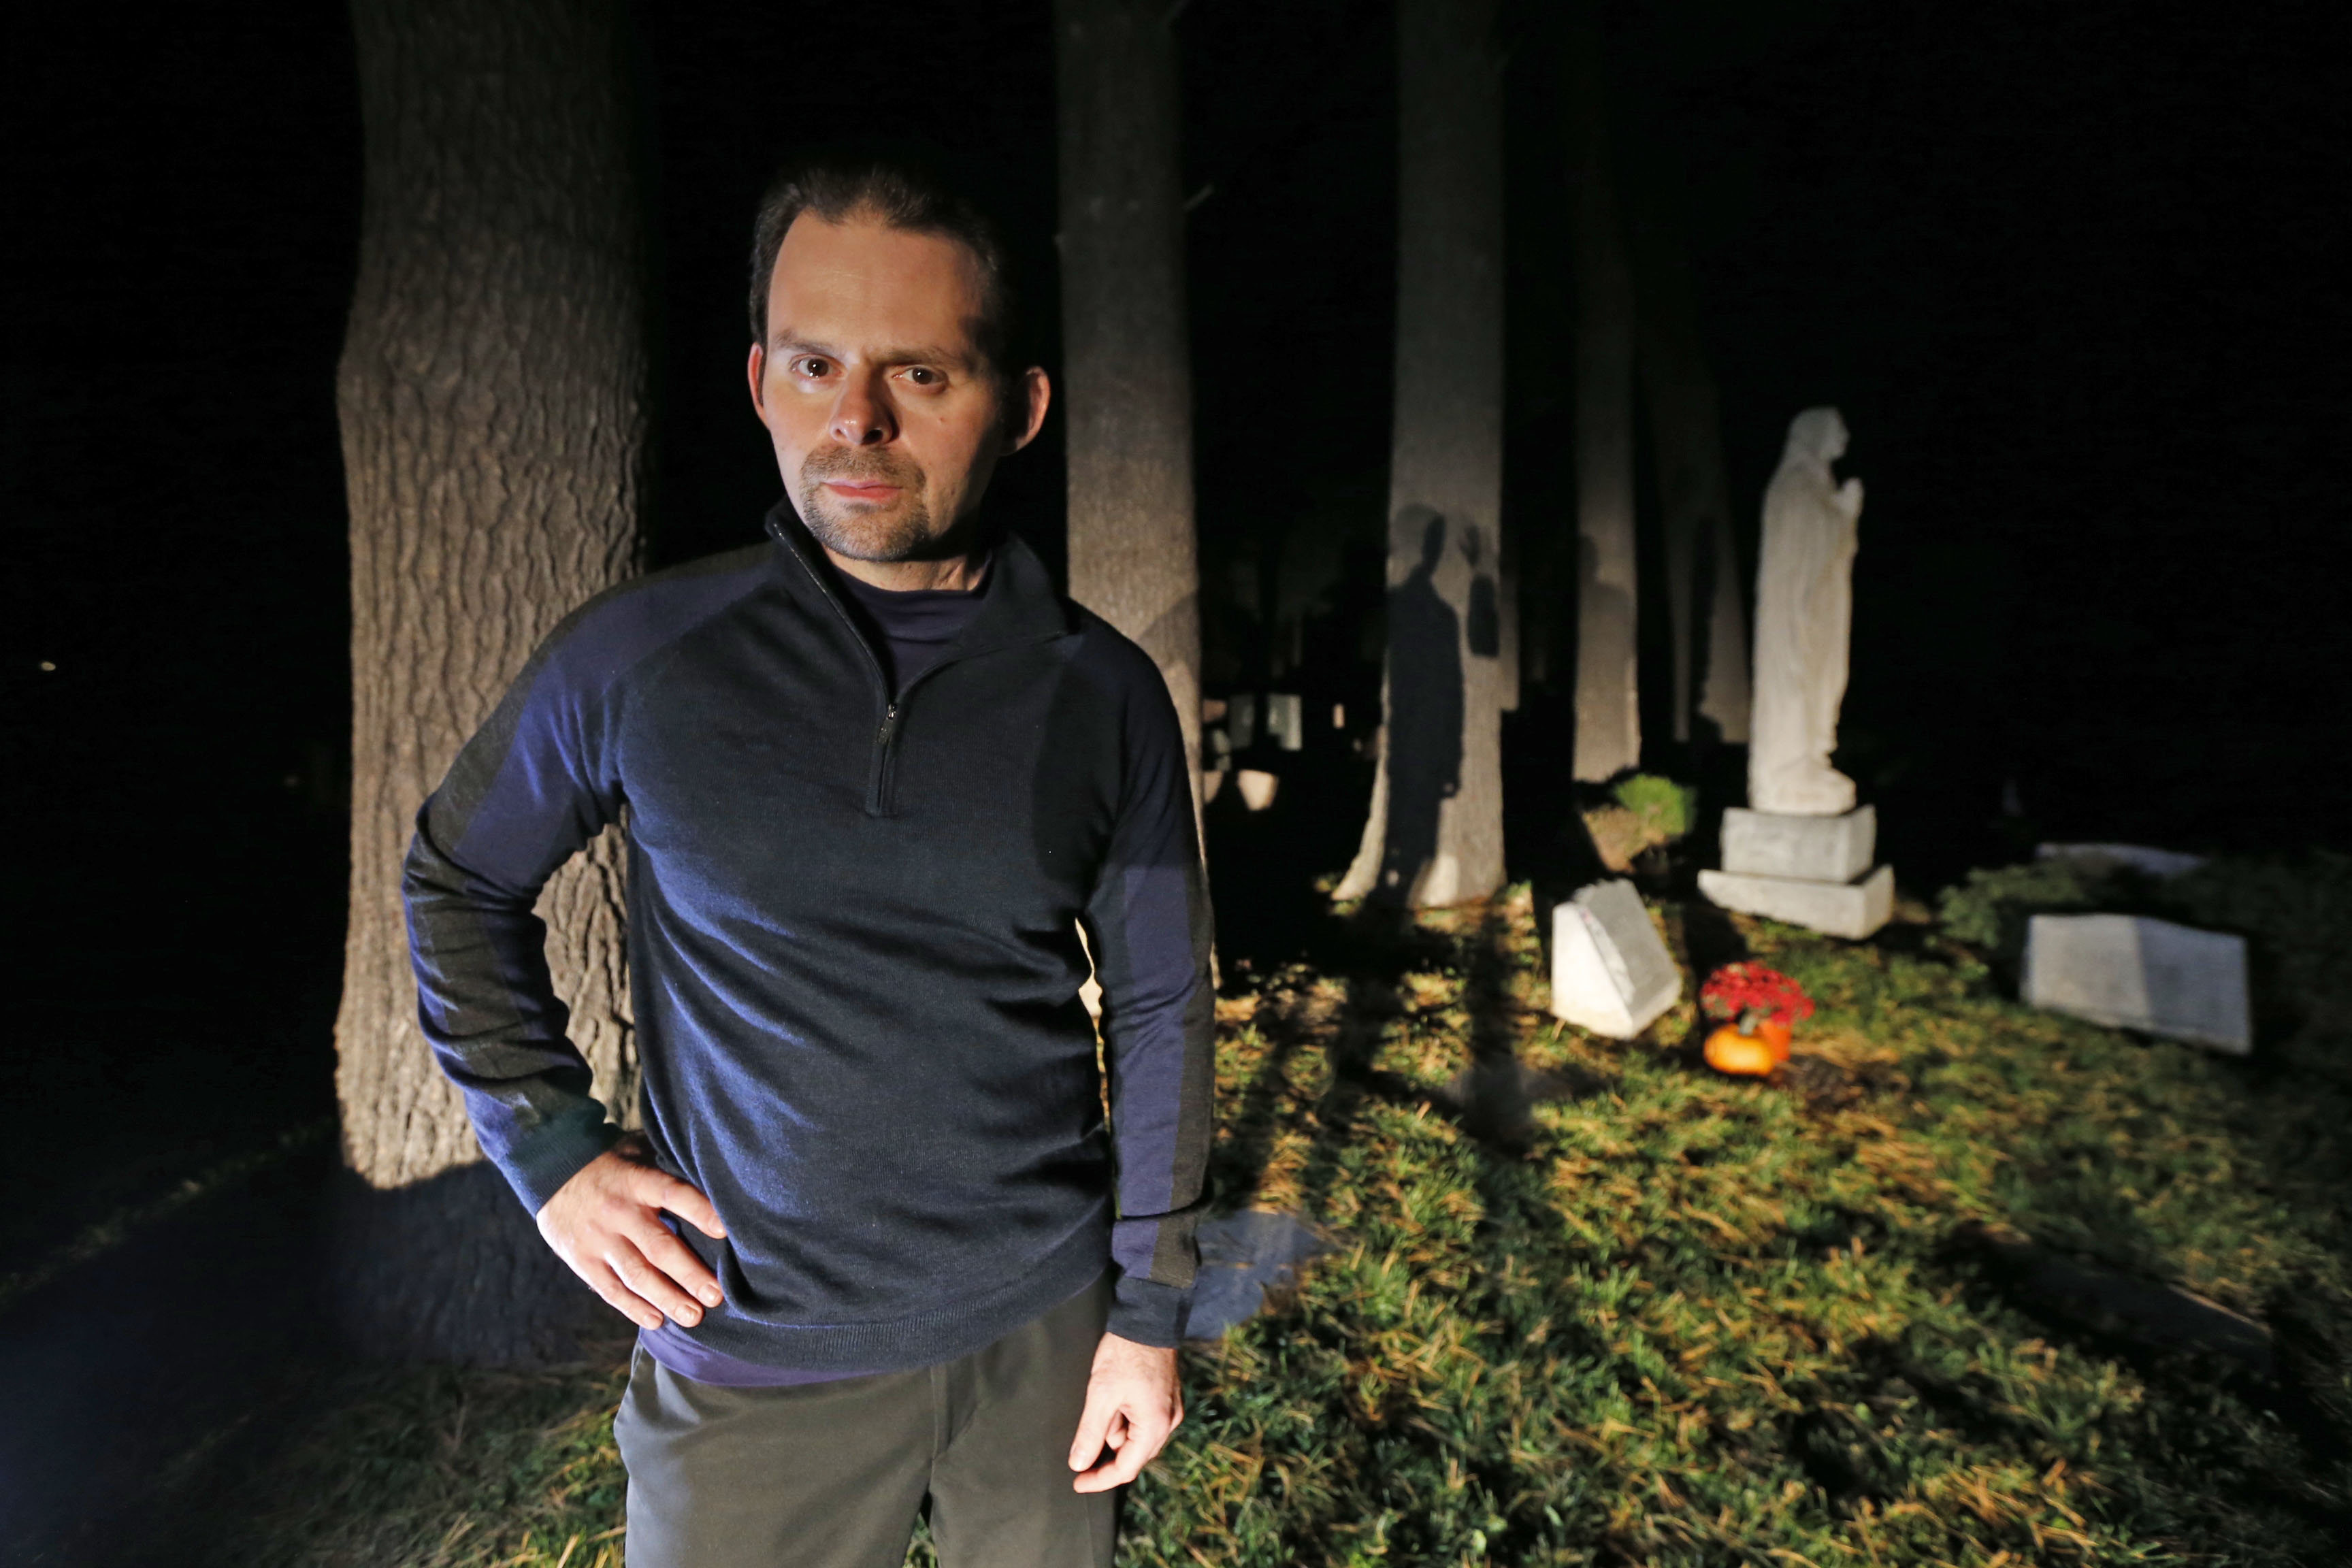 By day John Koerner teaches social science at ECC North. By night he is a student of the paranormal hunting for ghosts, speaking to the departed and giving walking tours in villages throughout the area.  This was in a cemetery in Hamburg on Monday, Oct. 10, 2016. (Robert Kirkham/Buffalo News)